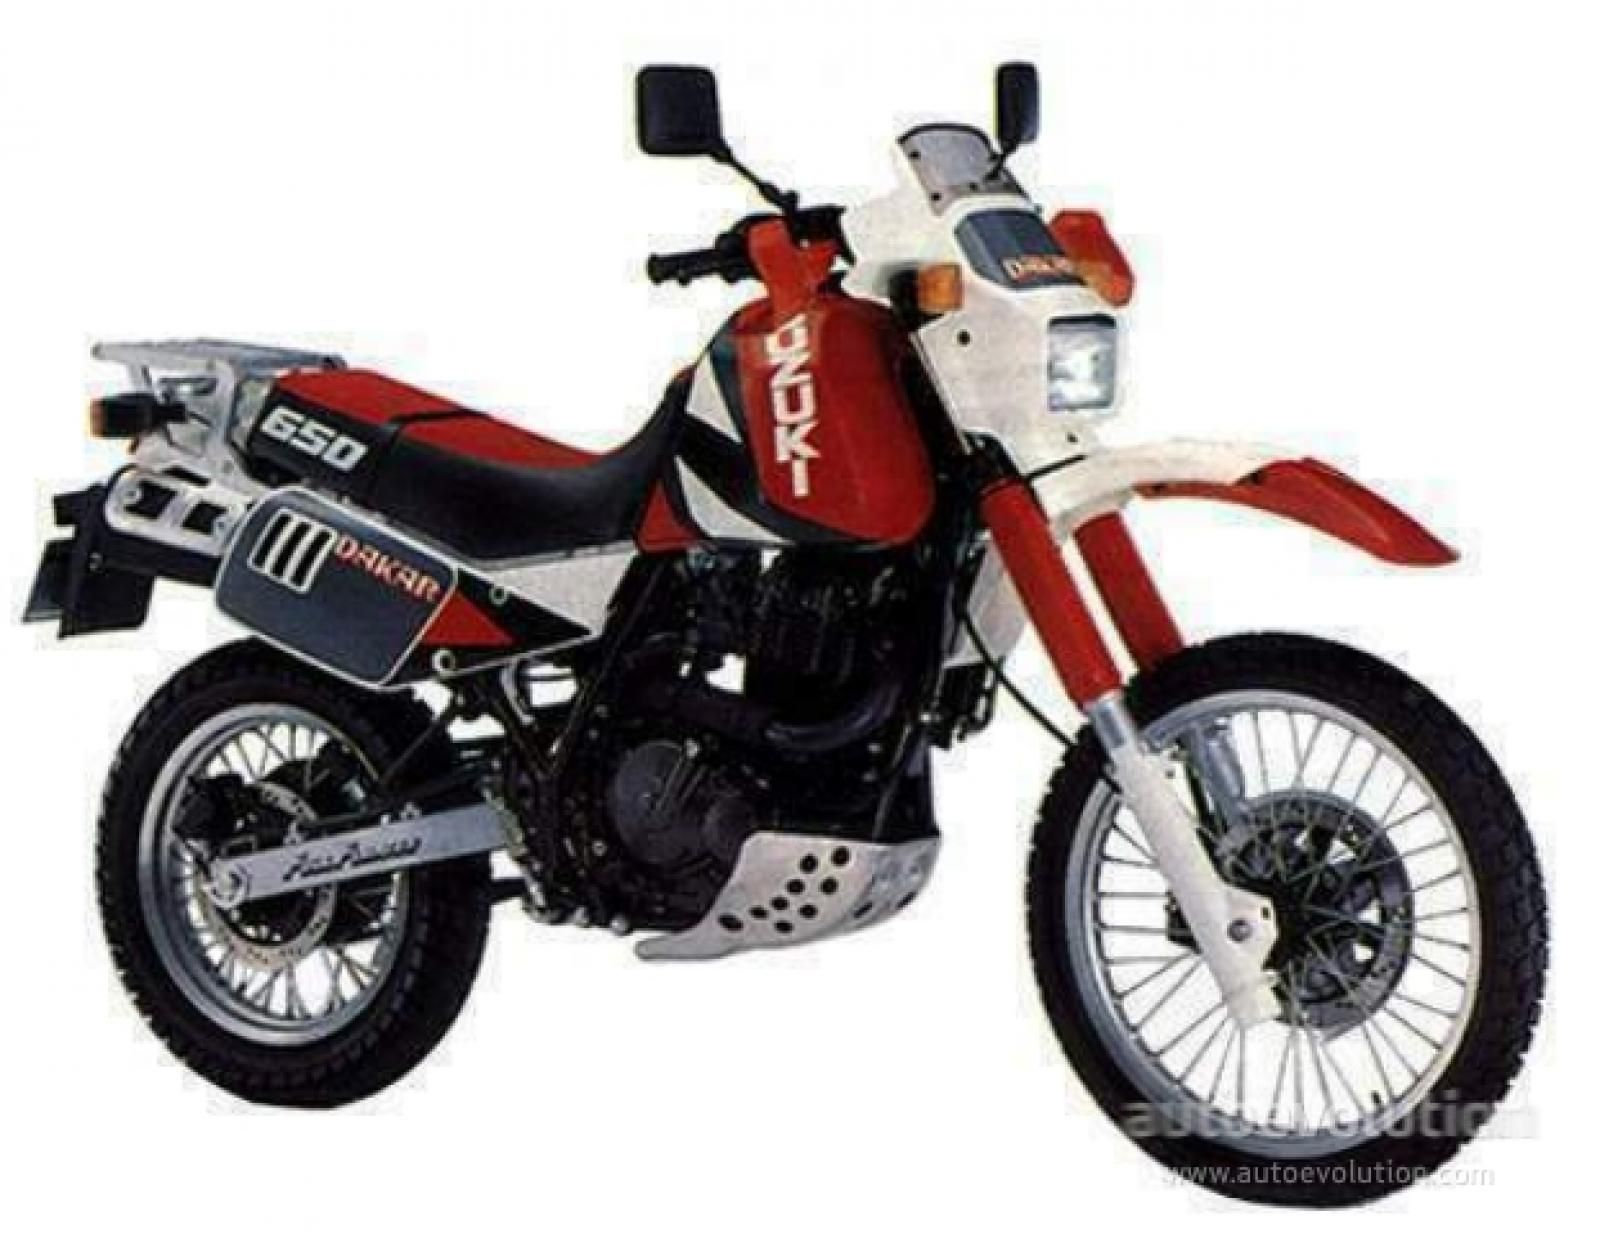 Pages of technical specs and information on the dr650. Suzuki Motorcycle,  Bike Trails,